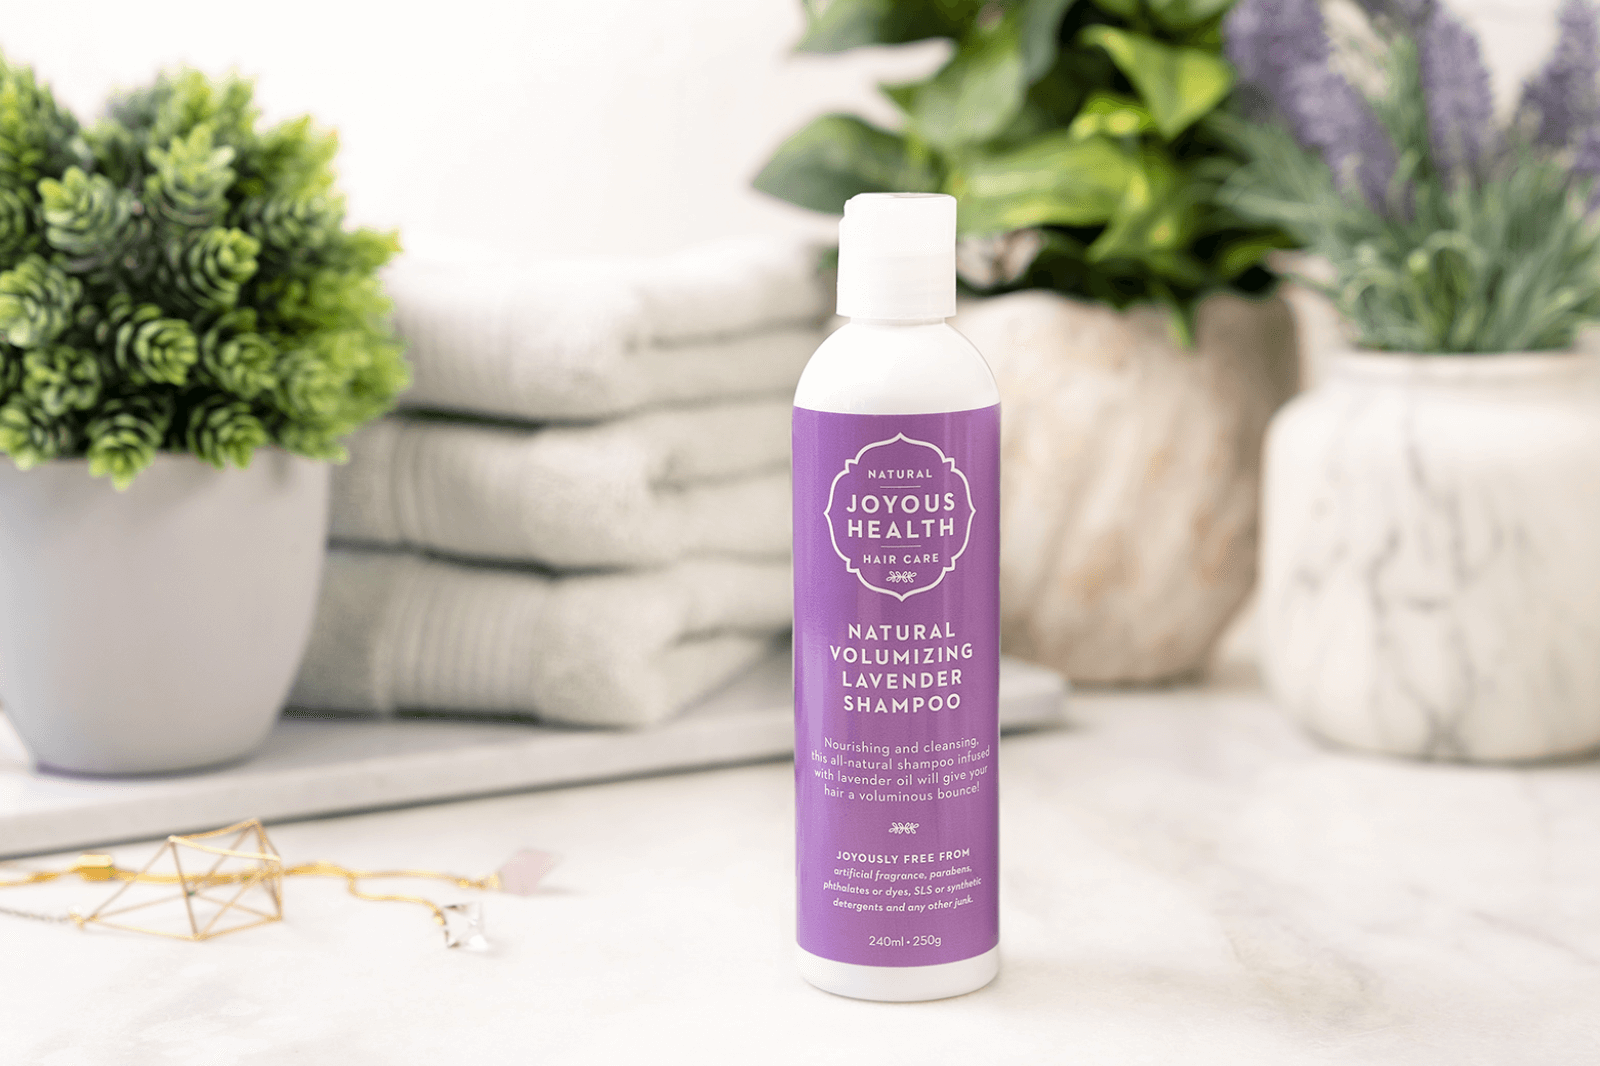 Natural Volumizing Lavender Shampoo thumbnail